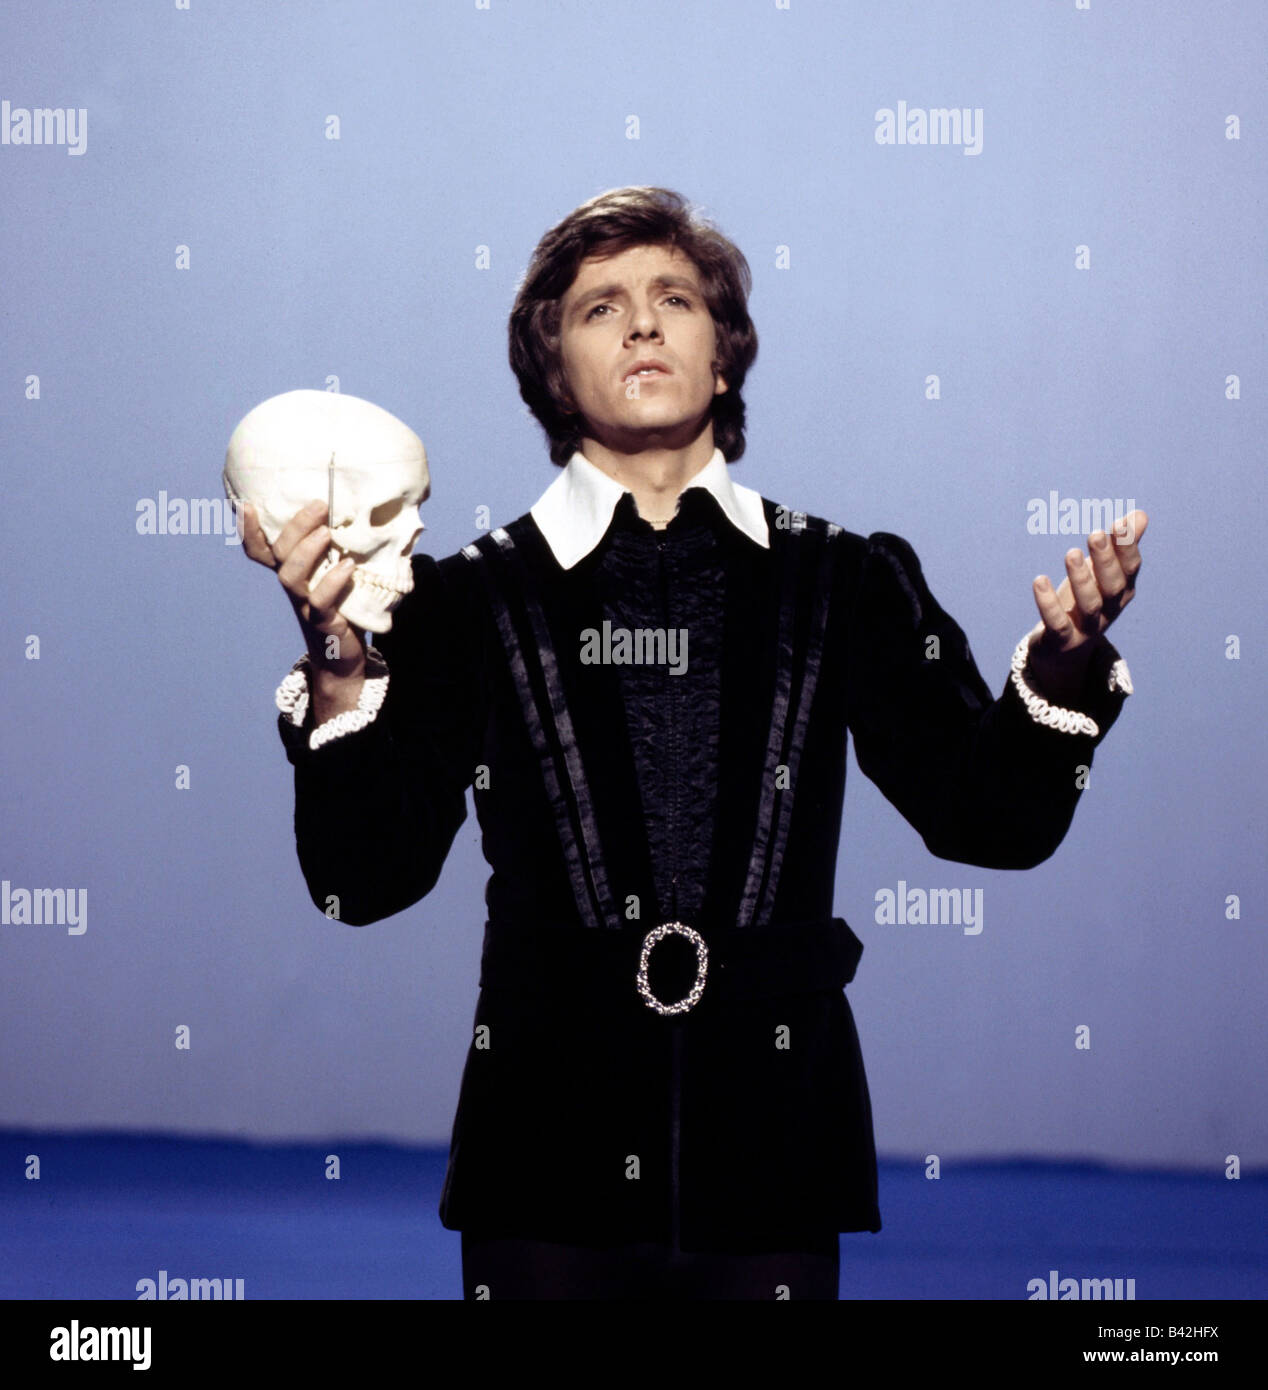 Schanze, Michael, * 15.1.1947, German moderator and singer, half length, dressed up as Hamlet, 1970s, Additional - Stock Image